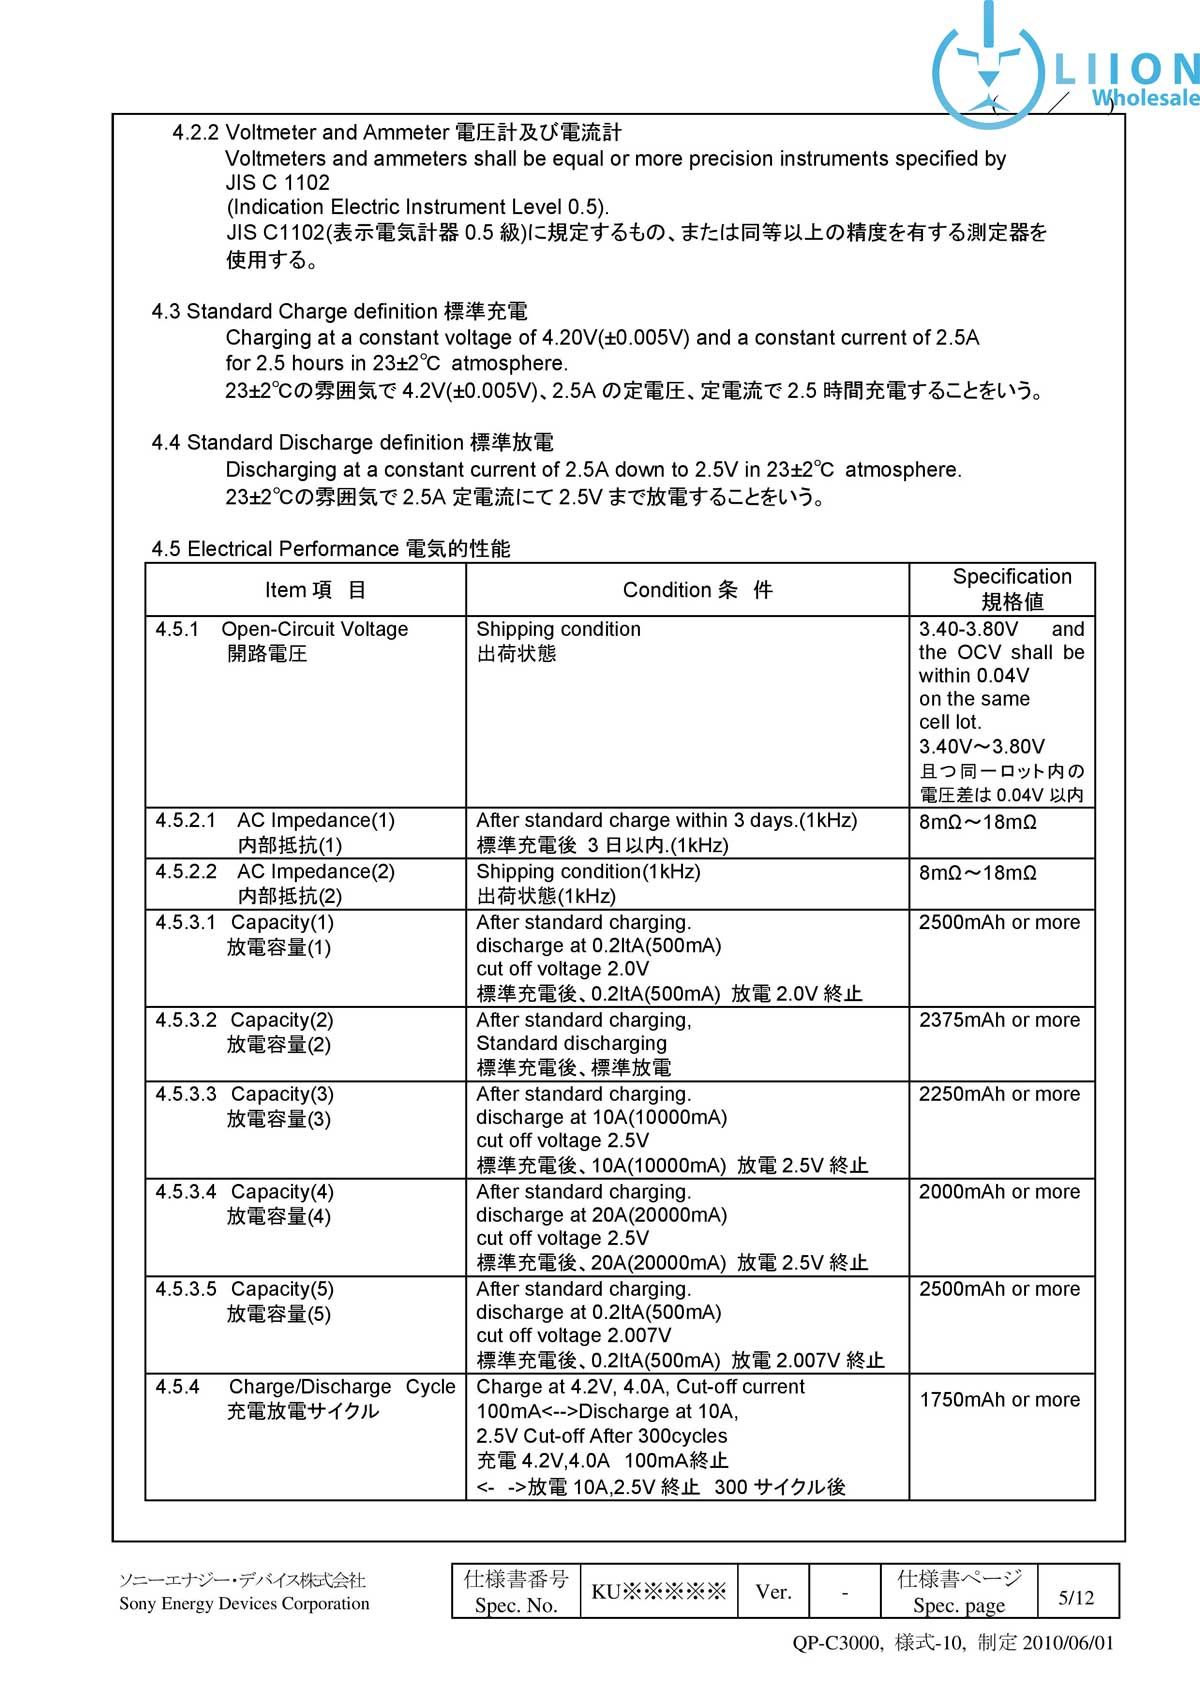 US18650 VTC5 specification page 5